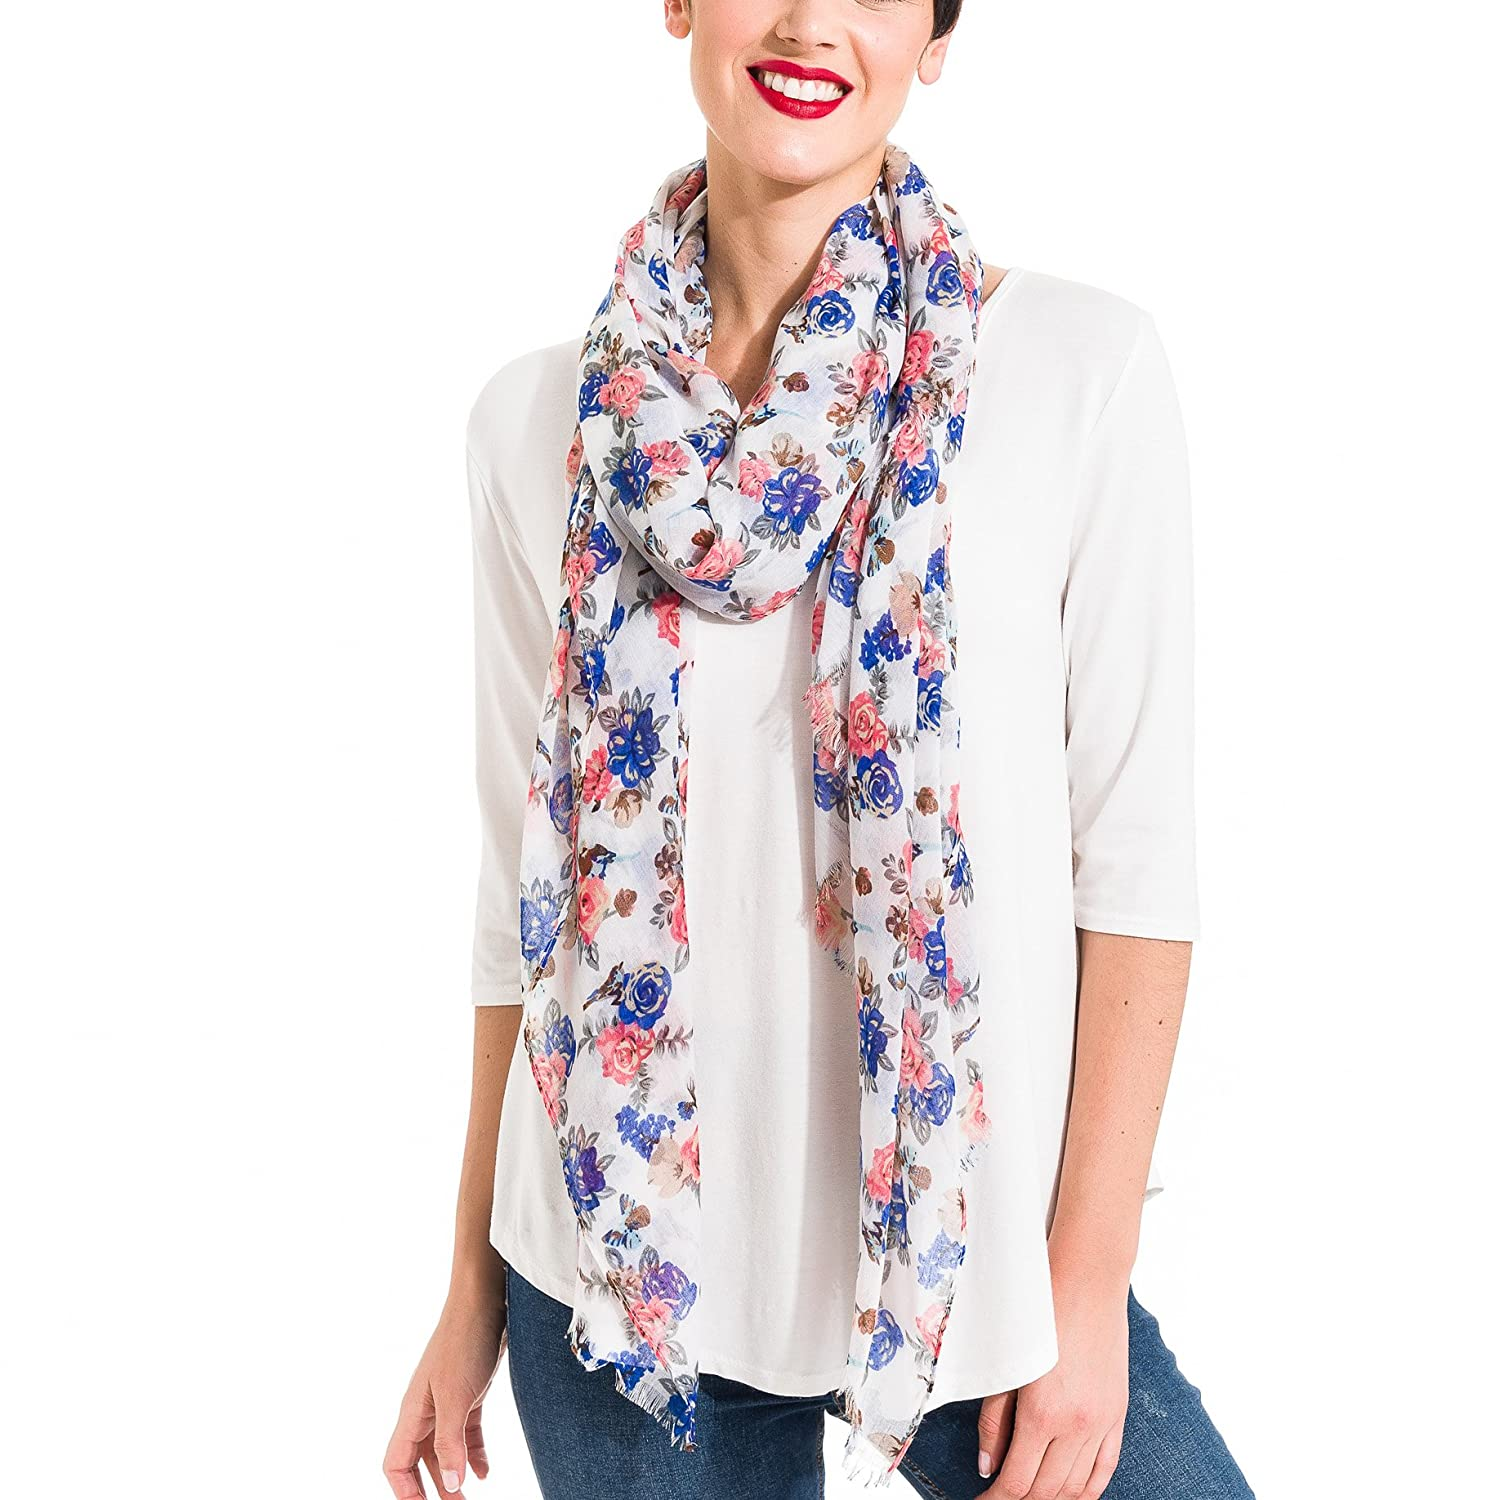 Scarf for Women Lightweight Floral Flower Fashion Fall Winter Scarves Shawl Spanish Designer Collection